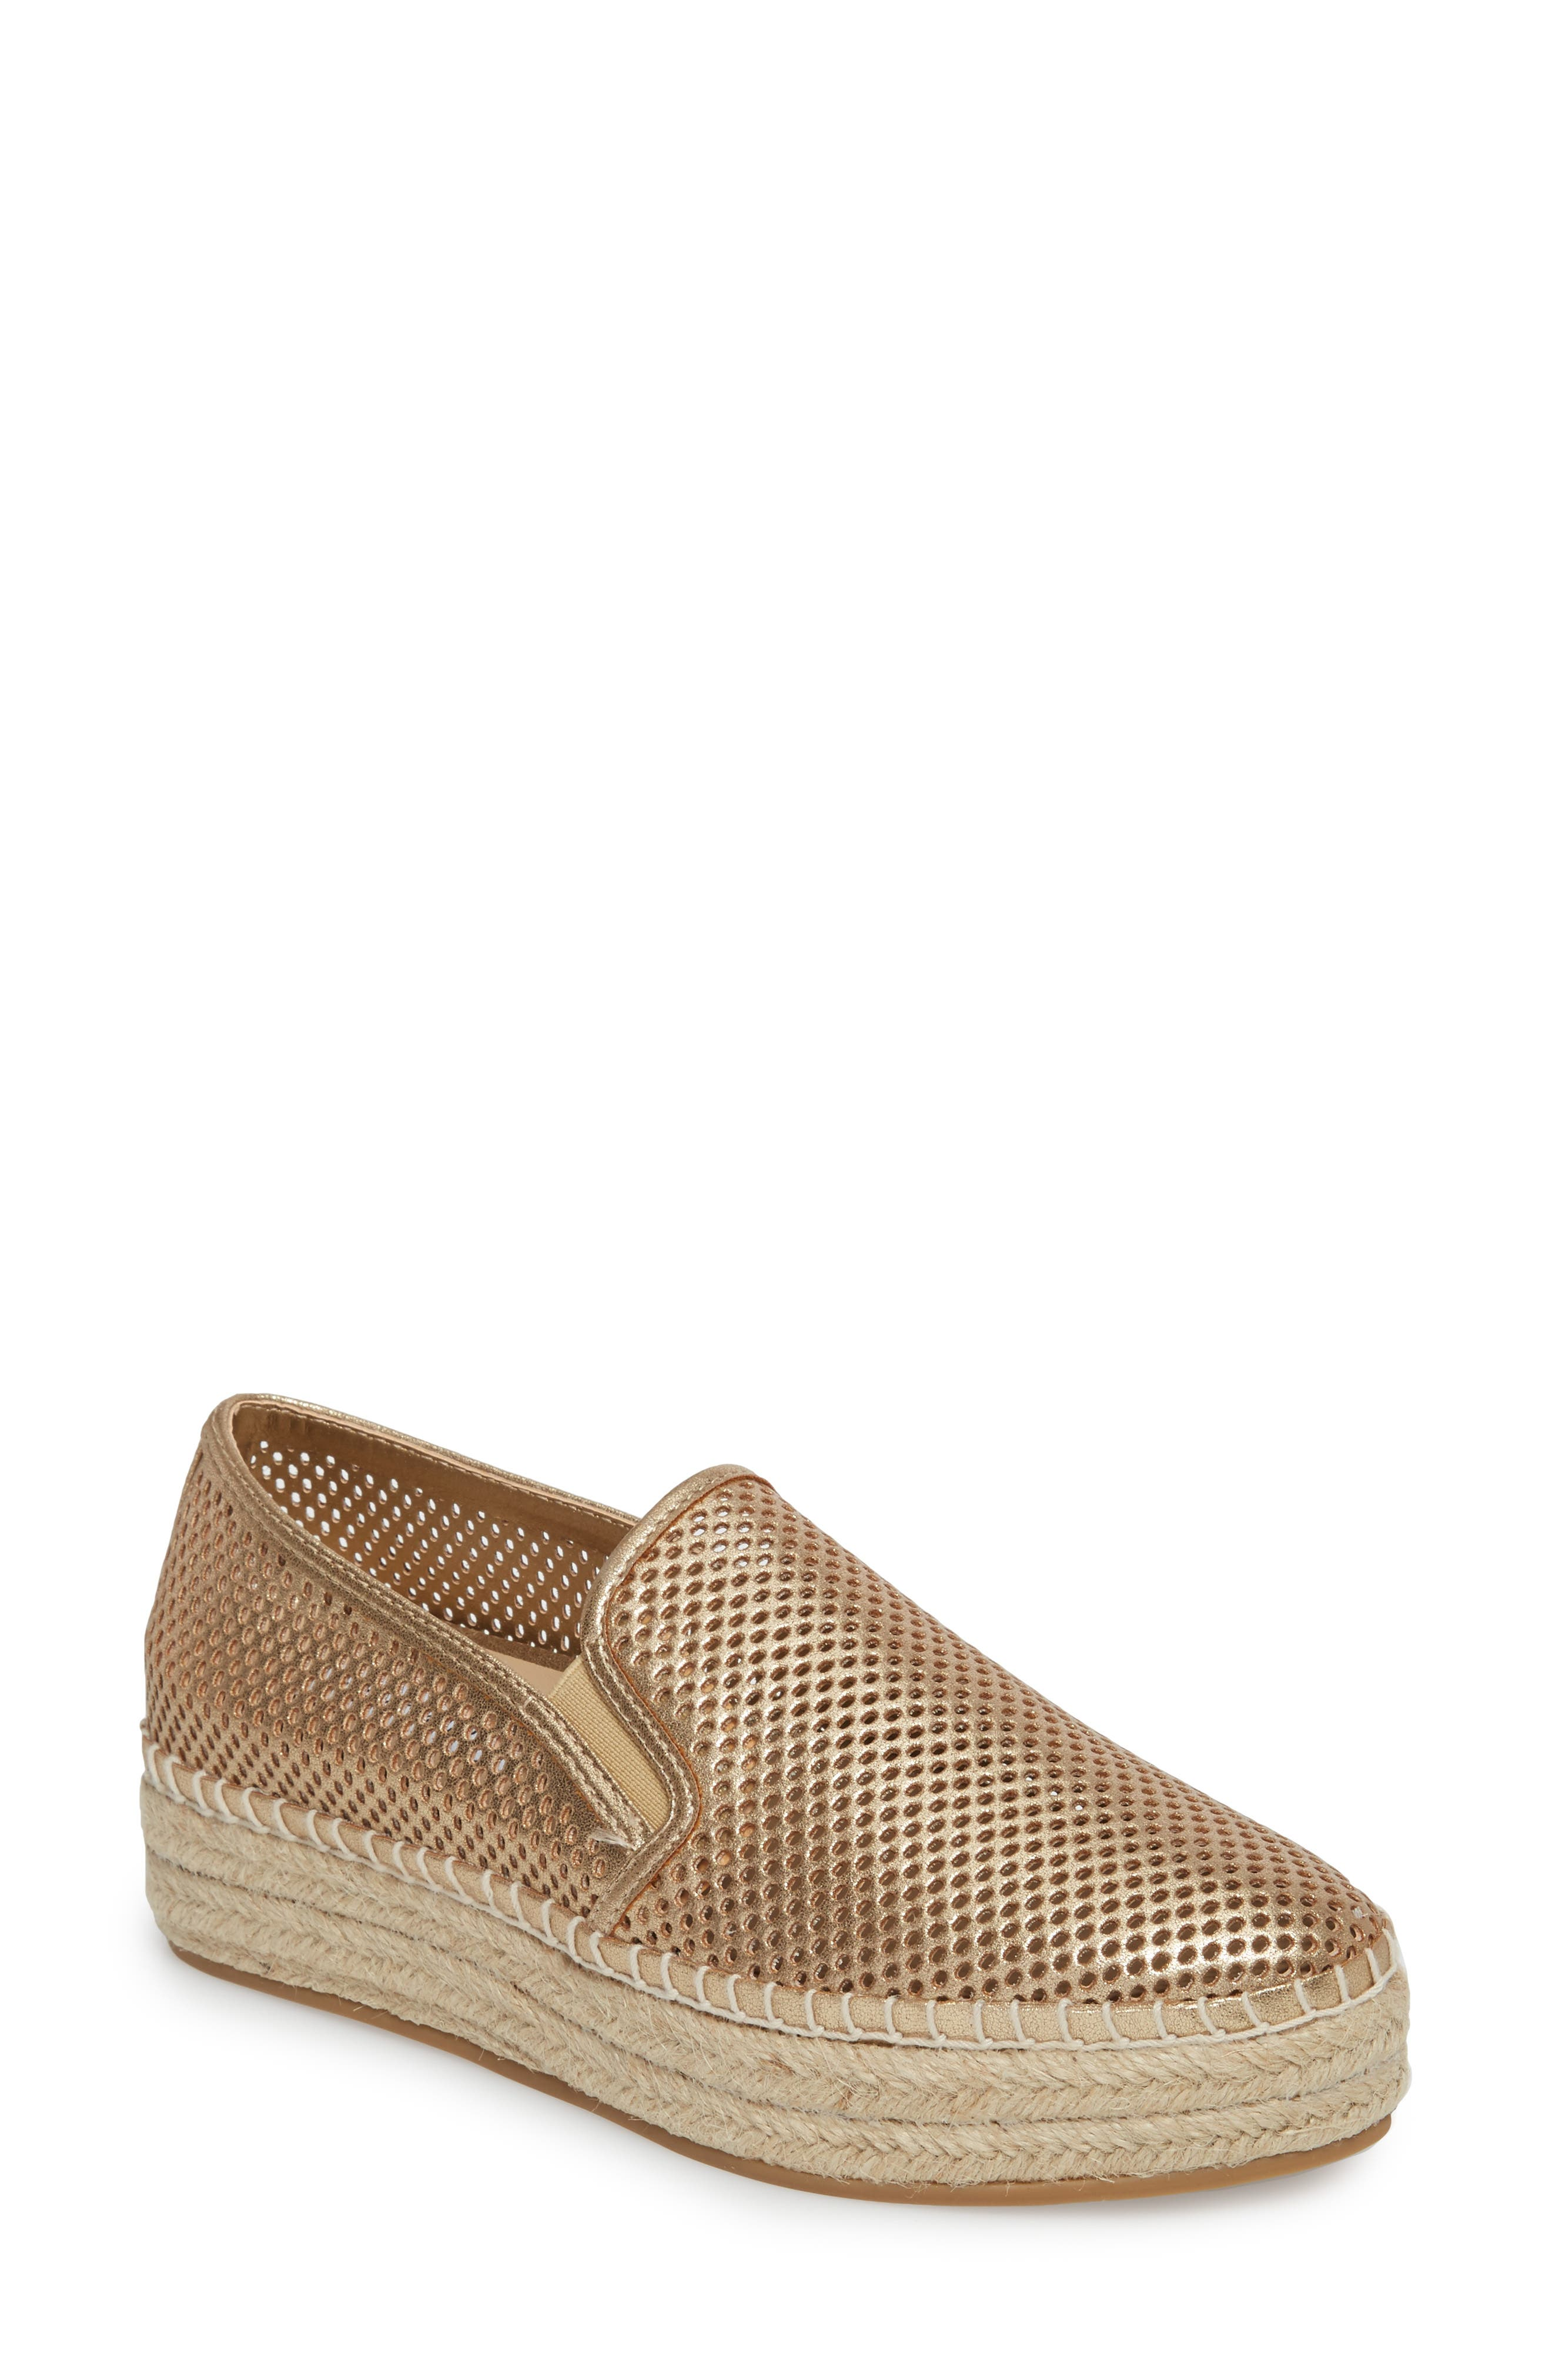 Main Image - Steve Madden Wright Perforated Platform Espadrille (Women)